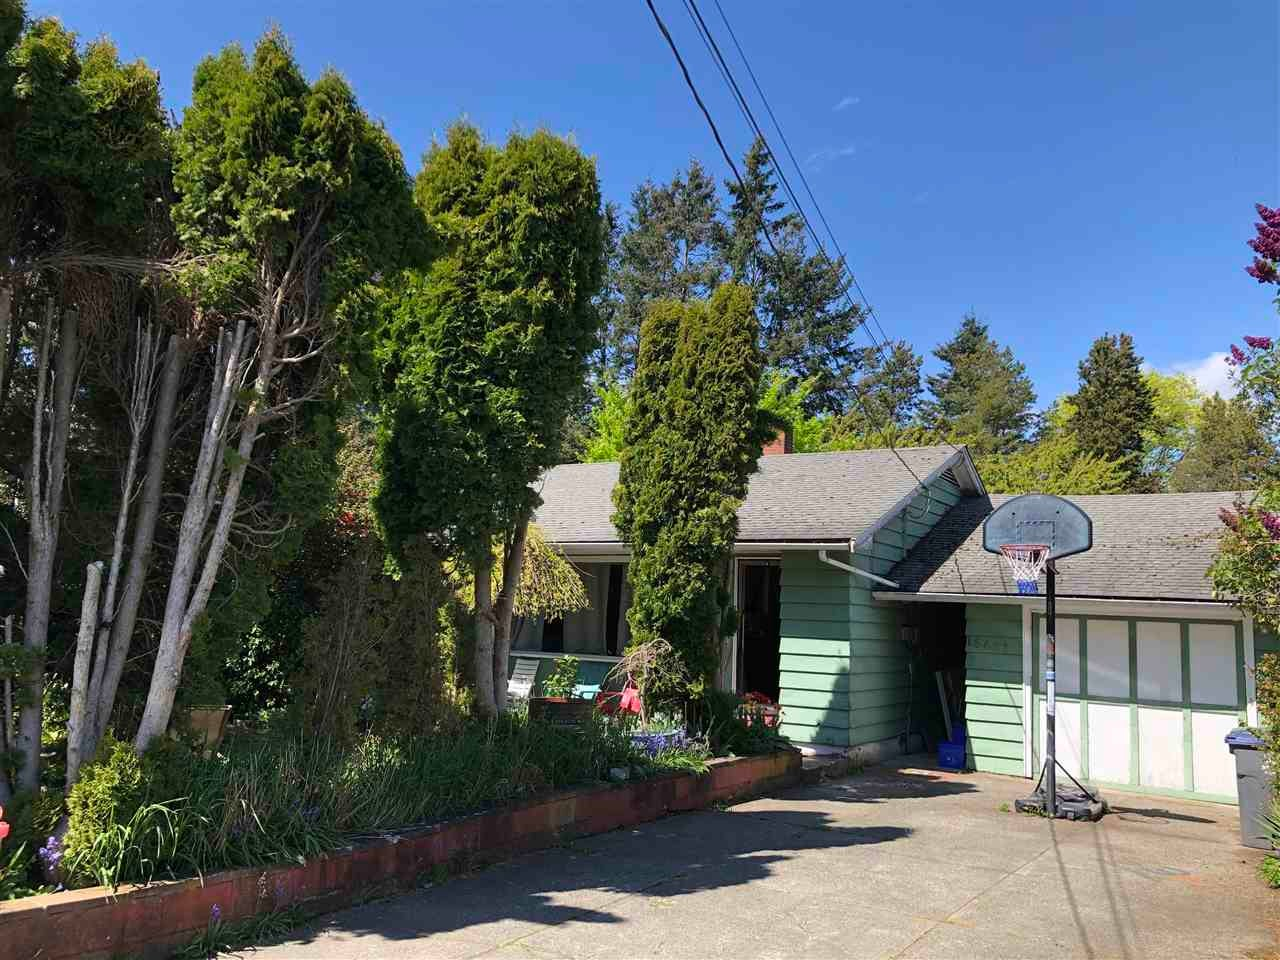 15461 17A AVENUE - King George Corridor House/Single Family for sale, 3 Bedrooms (R2575718) - #1